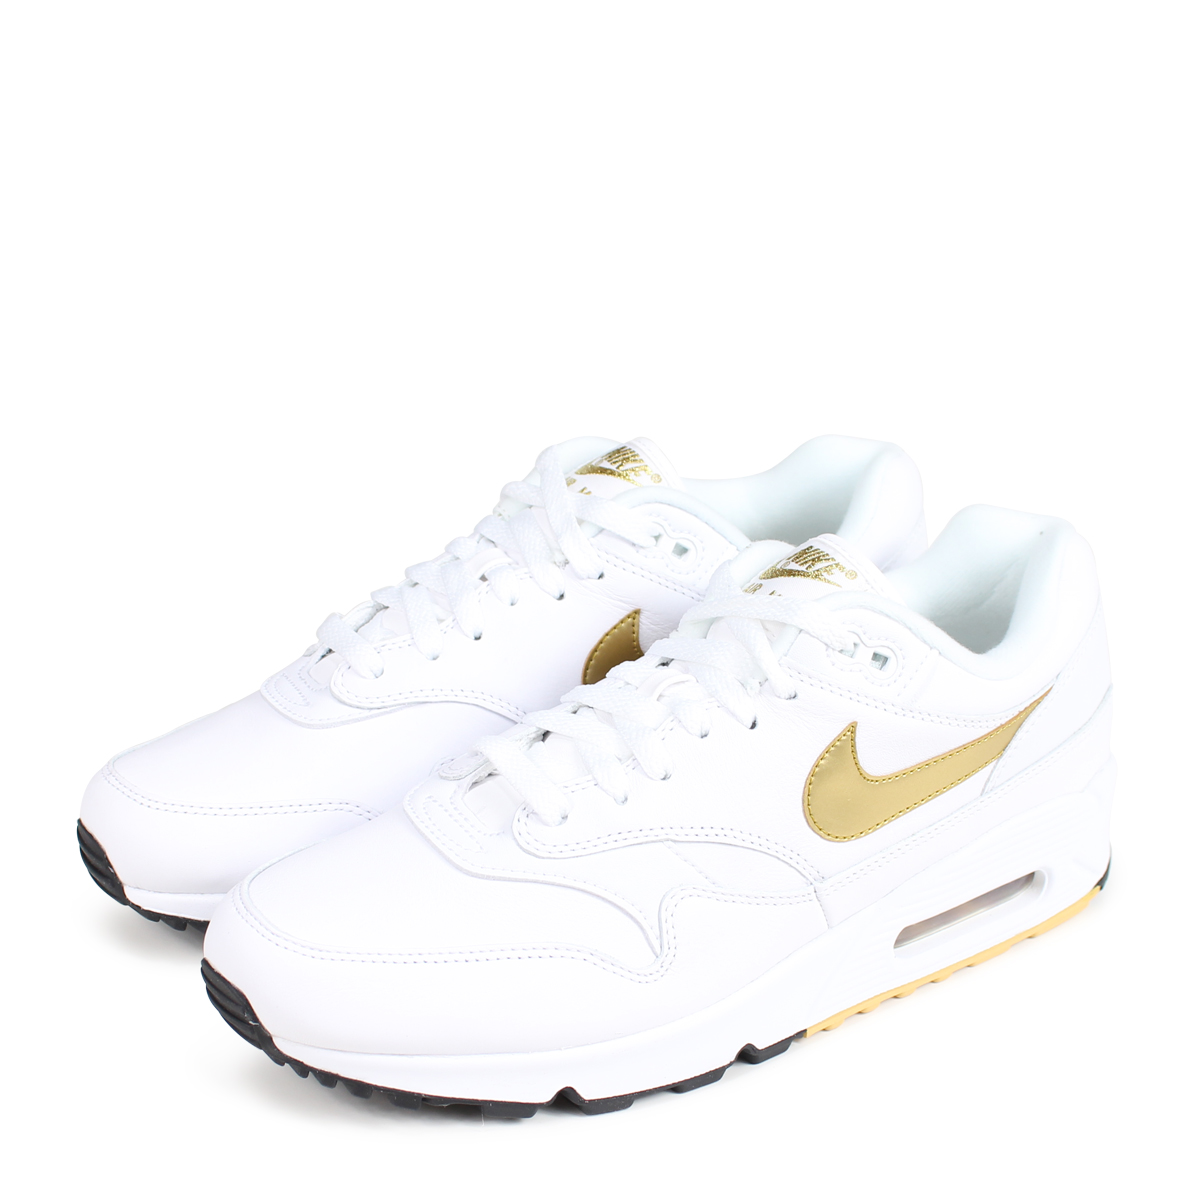 29661e209f074 NIKE AIR MAX 90 1 Kie Ney AMAX 90 1 sneakers men AJ7695-102 white  load  planned Shinnyu load in reservation product 9 11 containing   189